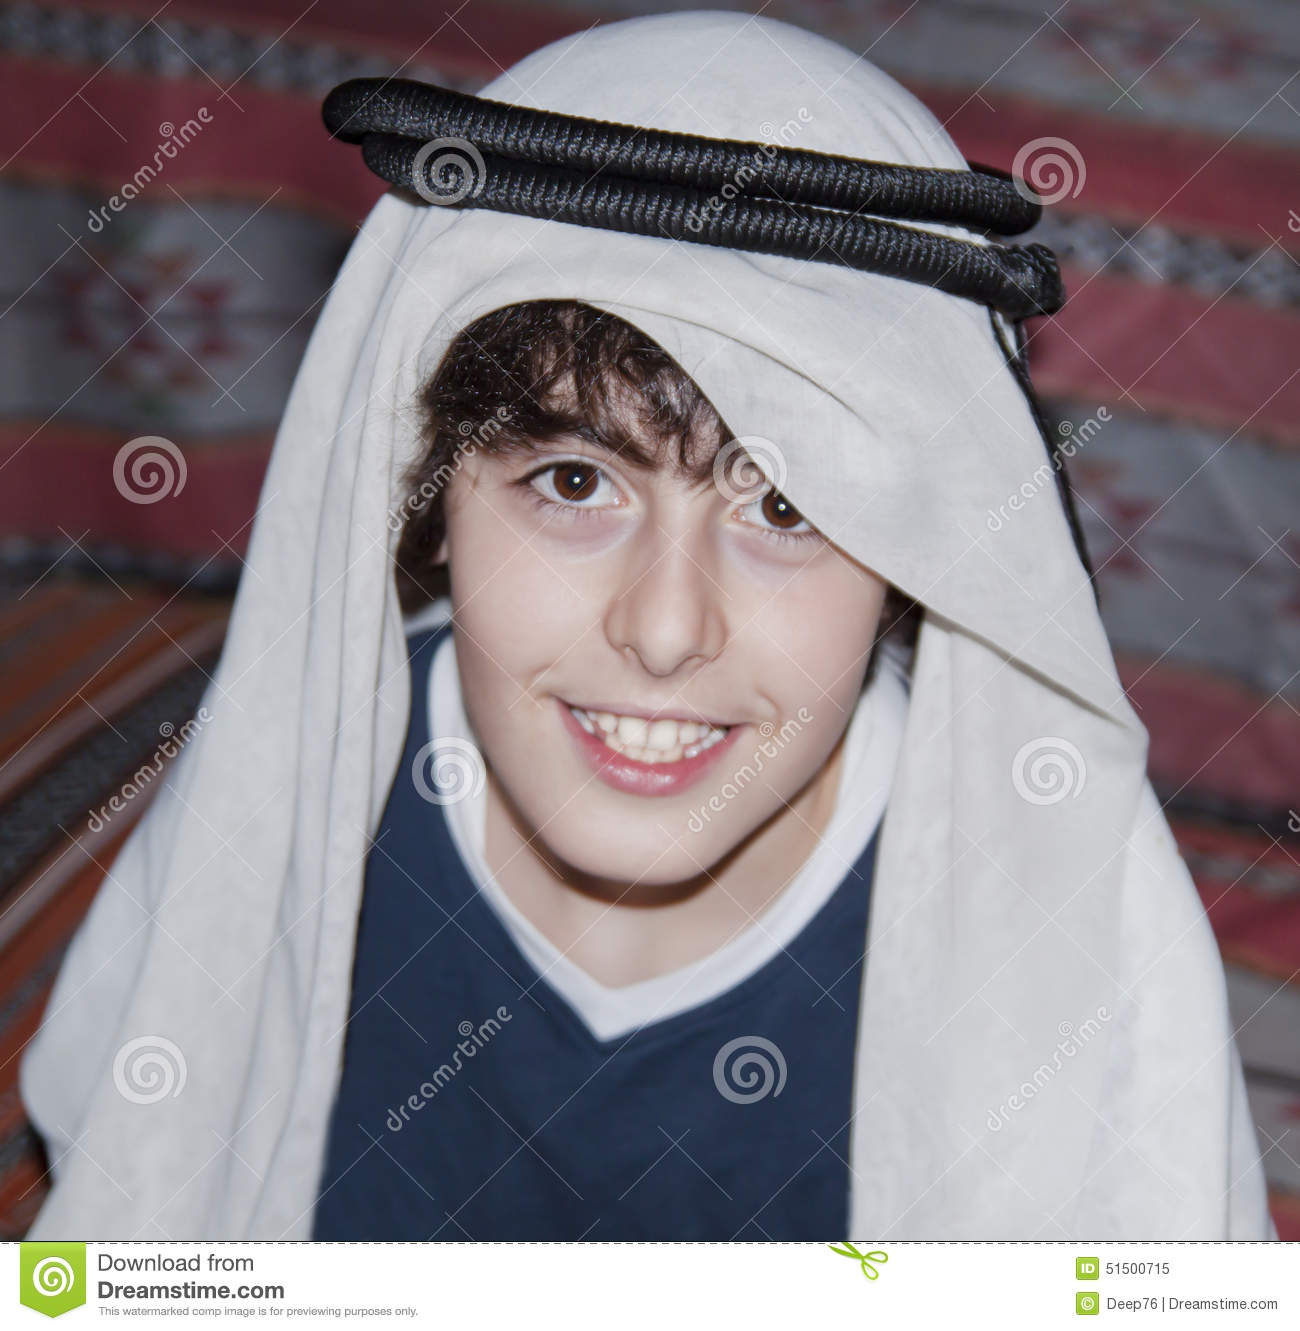 Happy Teen With Arabic Clothes Stock Image - Image of